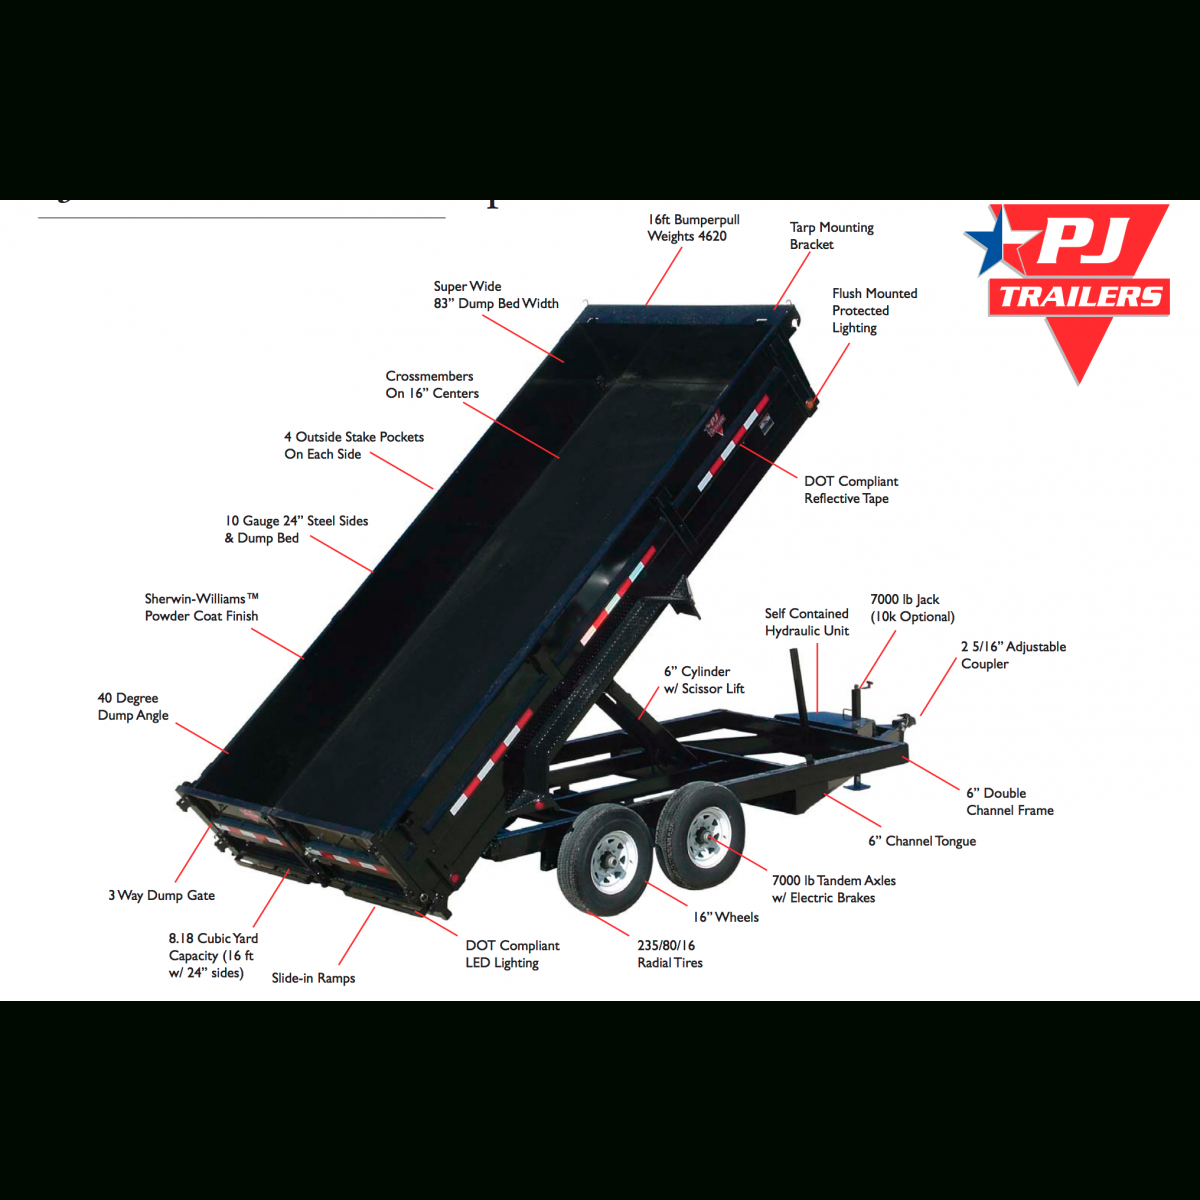 Wiring Diagram For Pj Dump Trailer : 34 Wiring Diagram Images - Pj Dump Trailer Wiring Diagram